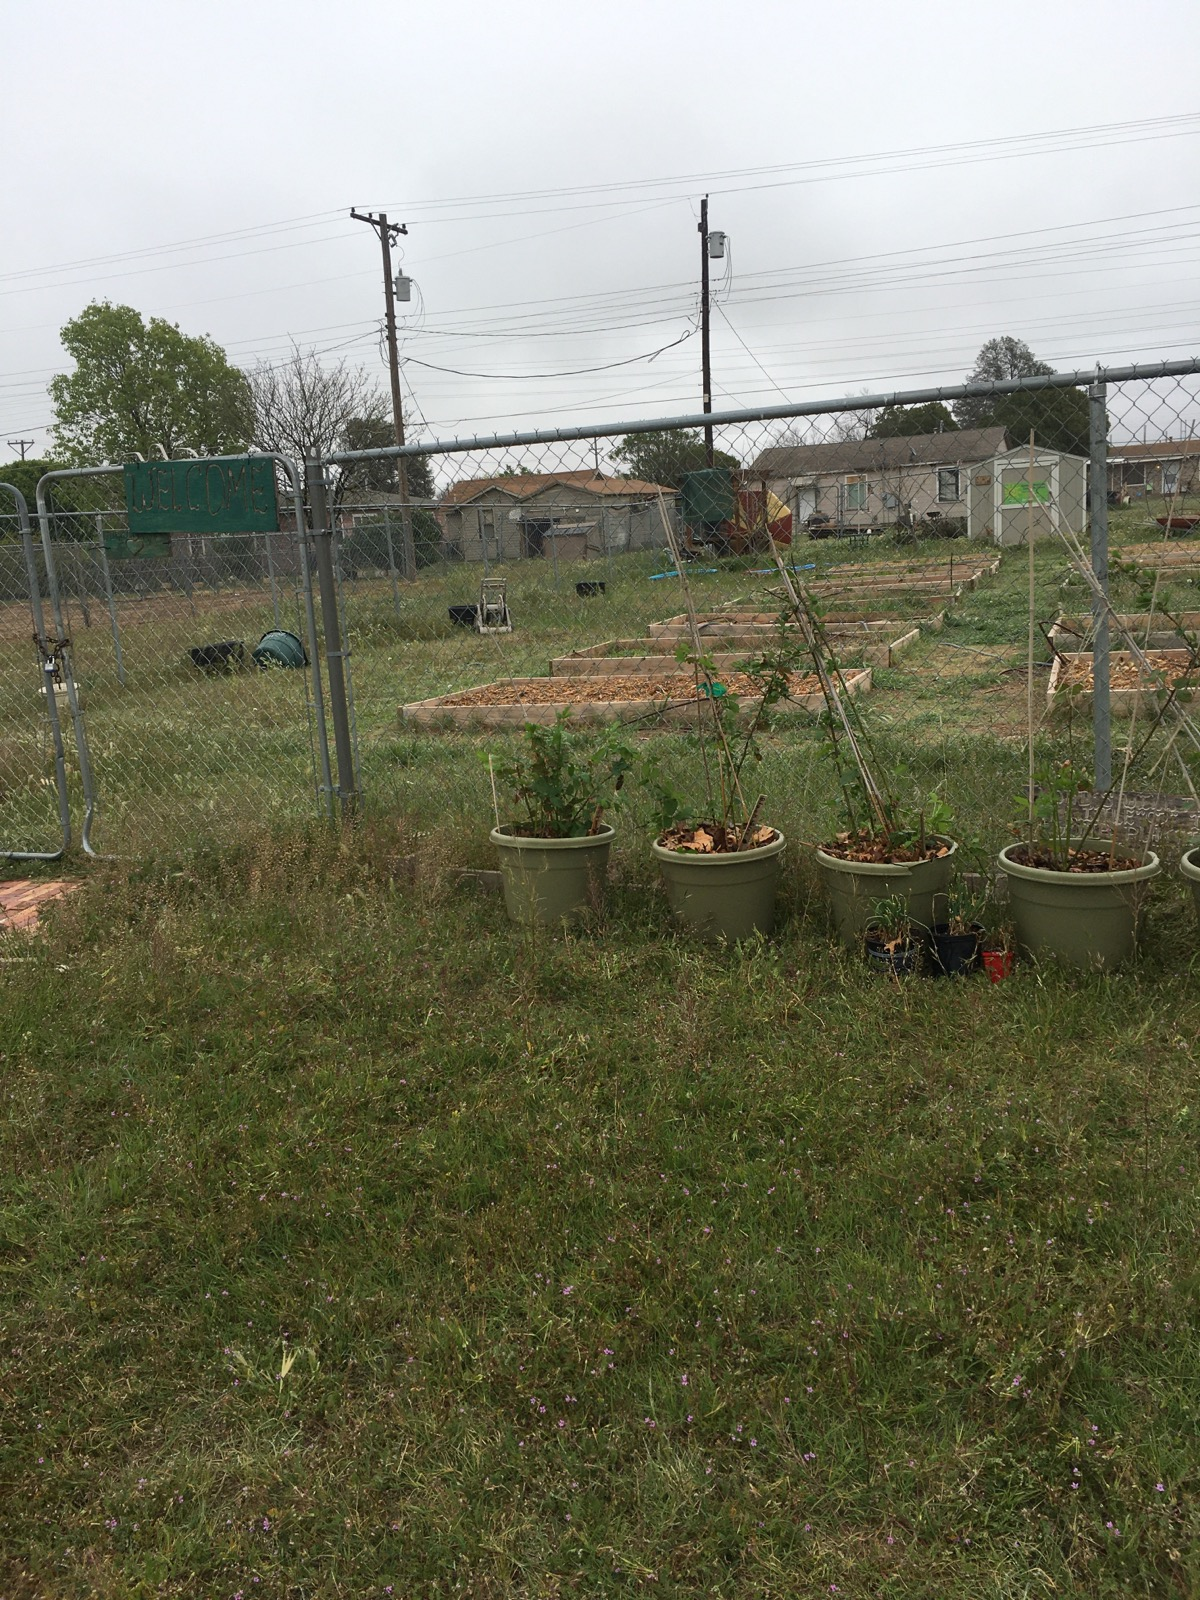 BOOKER T. WASHINGTON COMMUNITY GARDEN